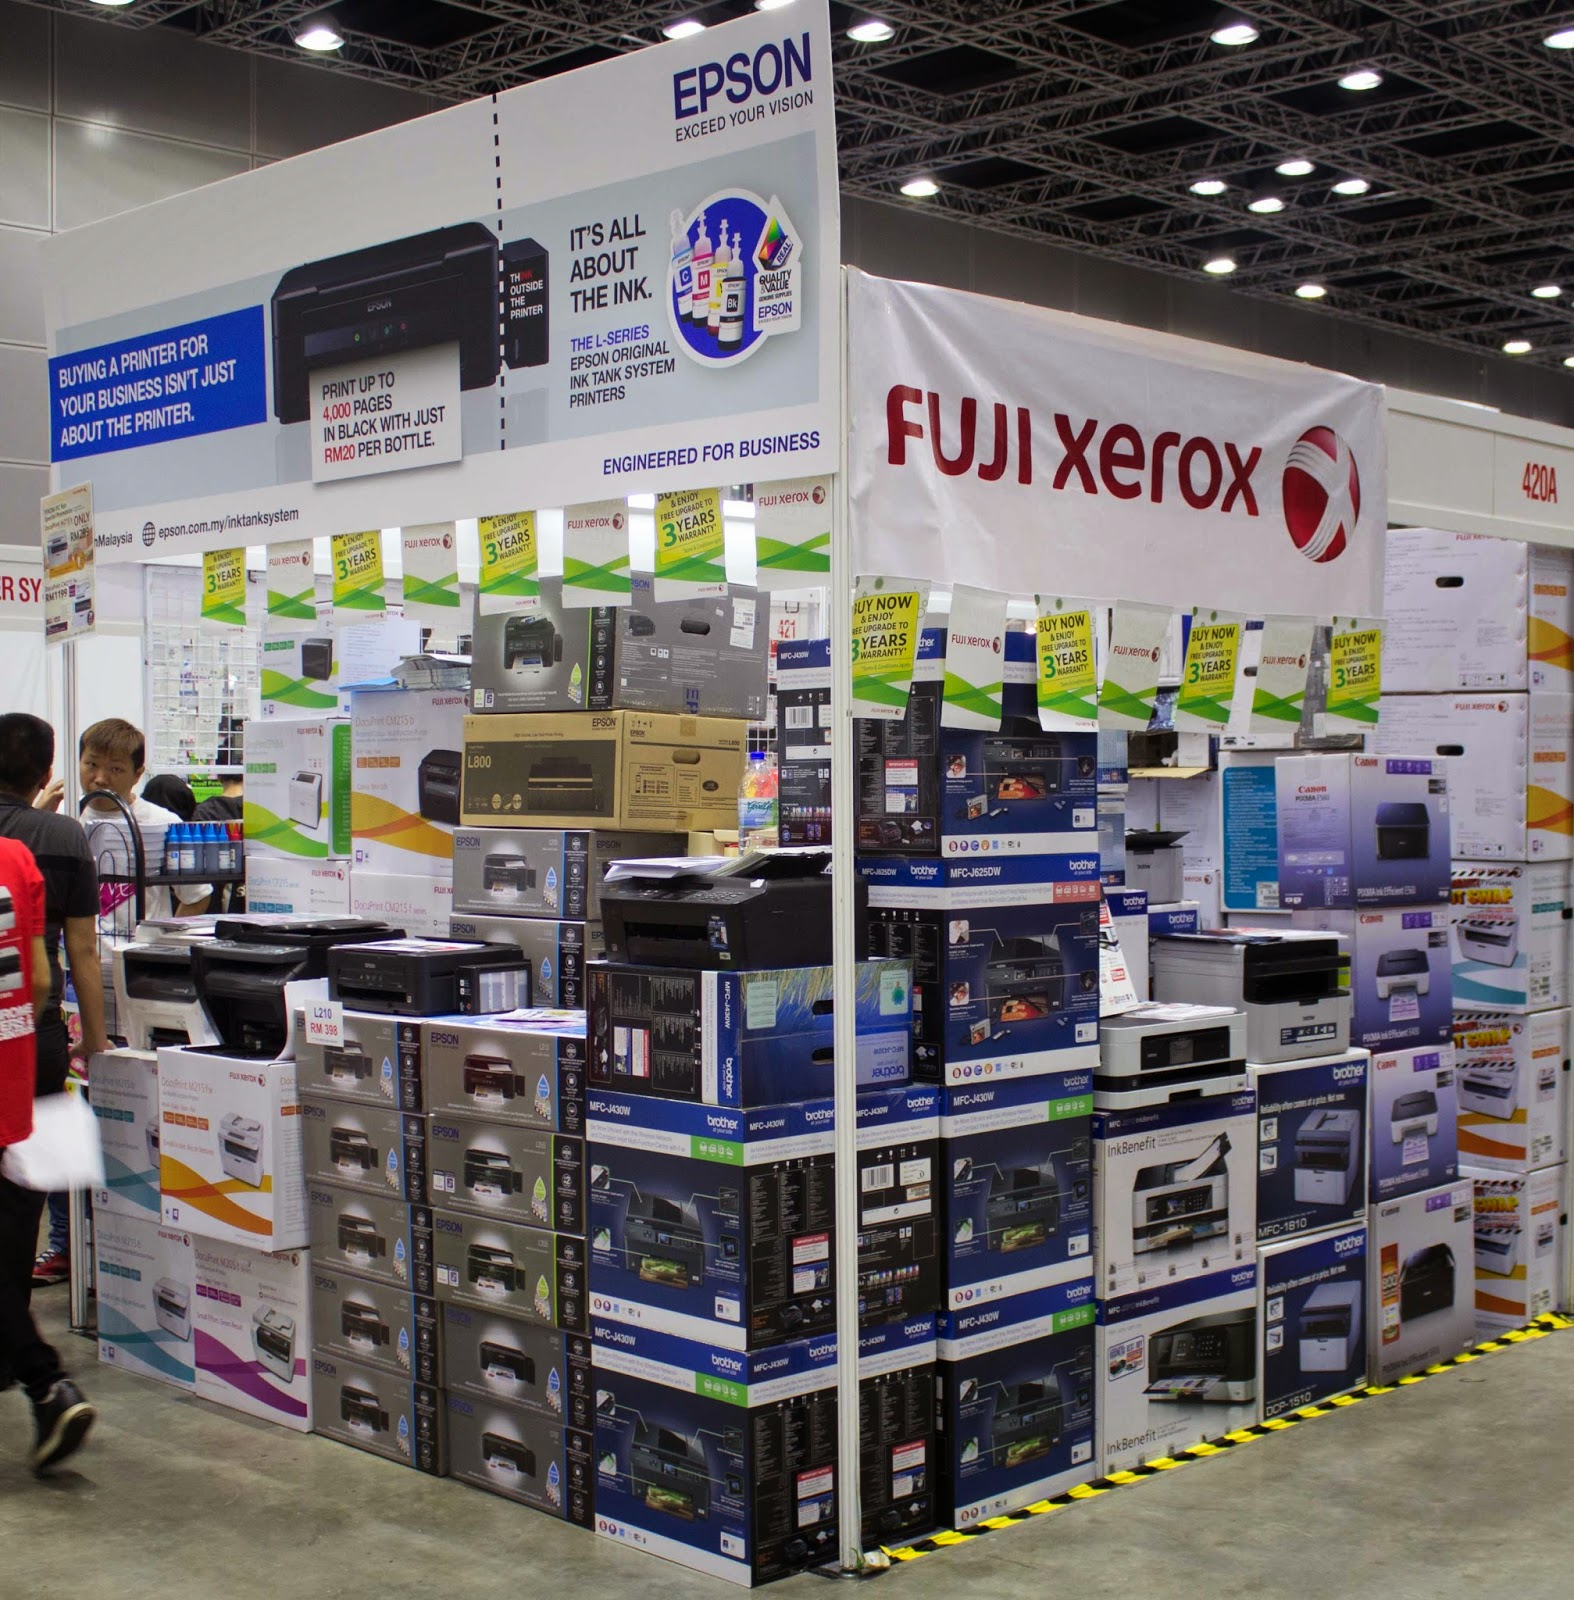 Coverage of PIKOM PC Fair 2014 @ Kuala Lumpur Convention Center 375